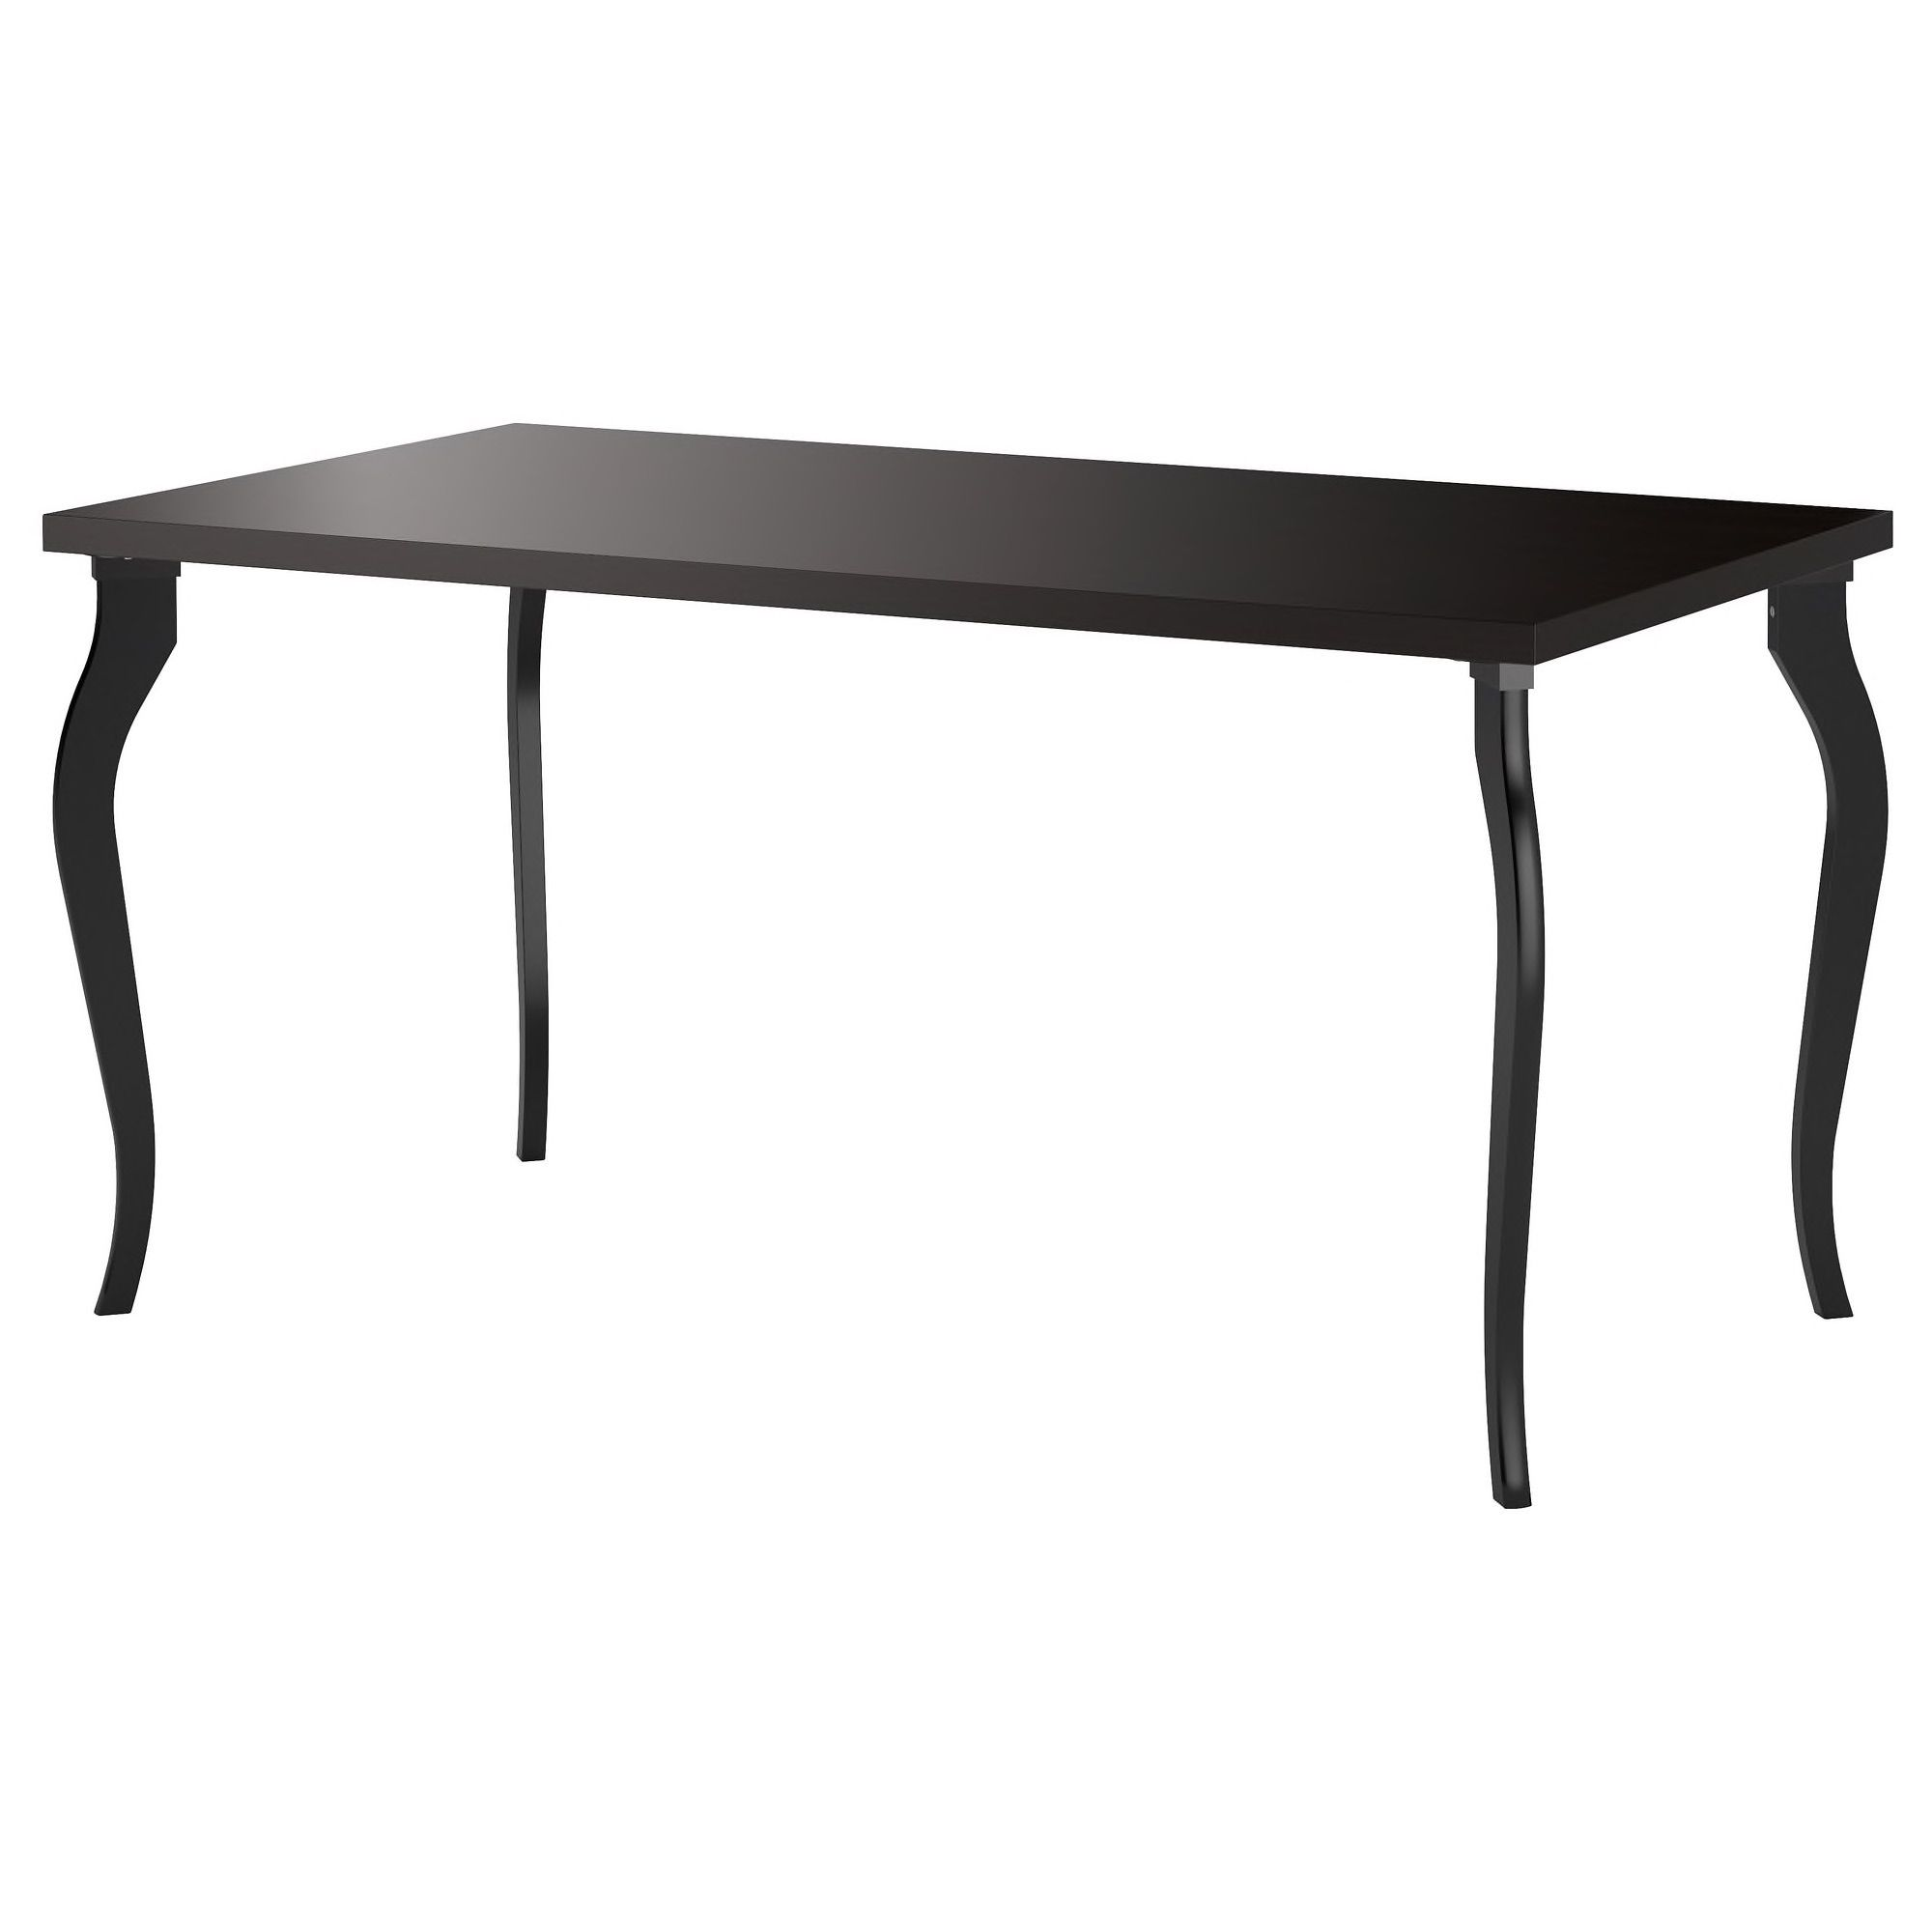 Linnmon/Lalle Table